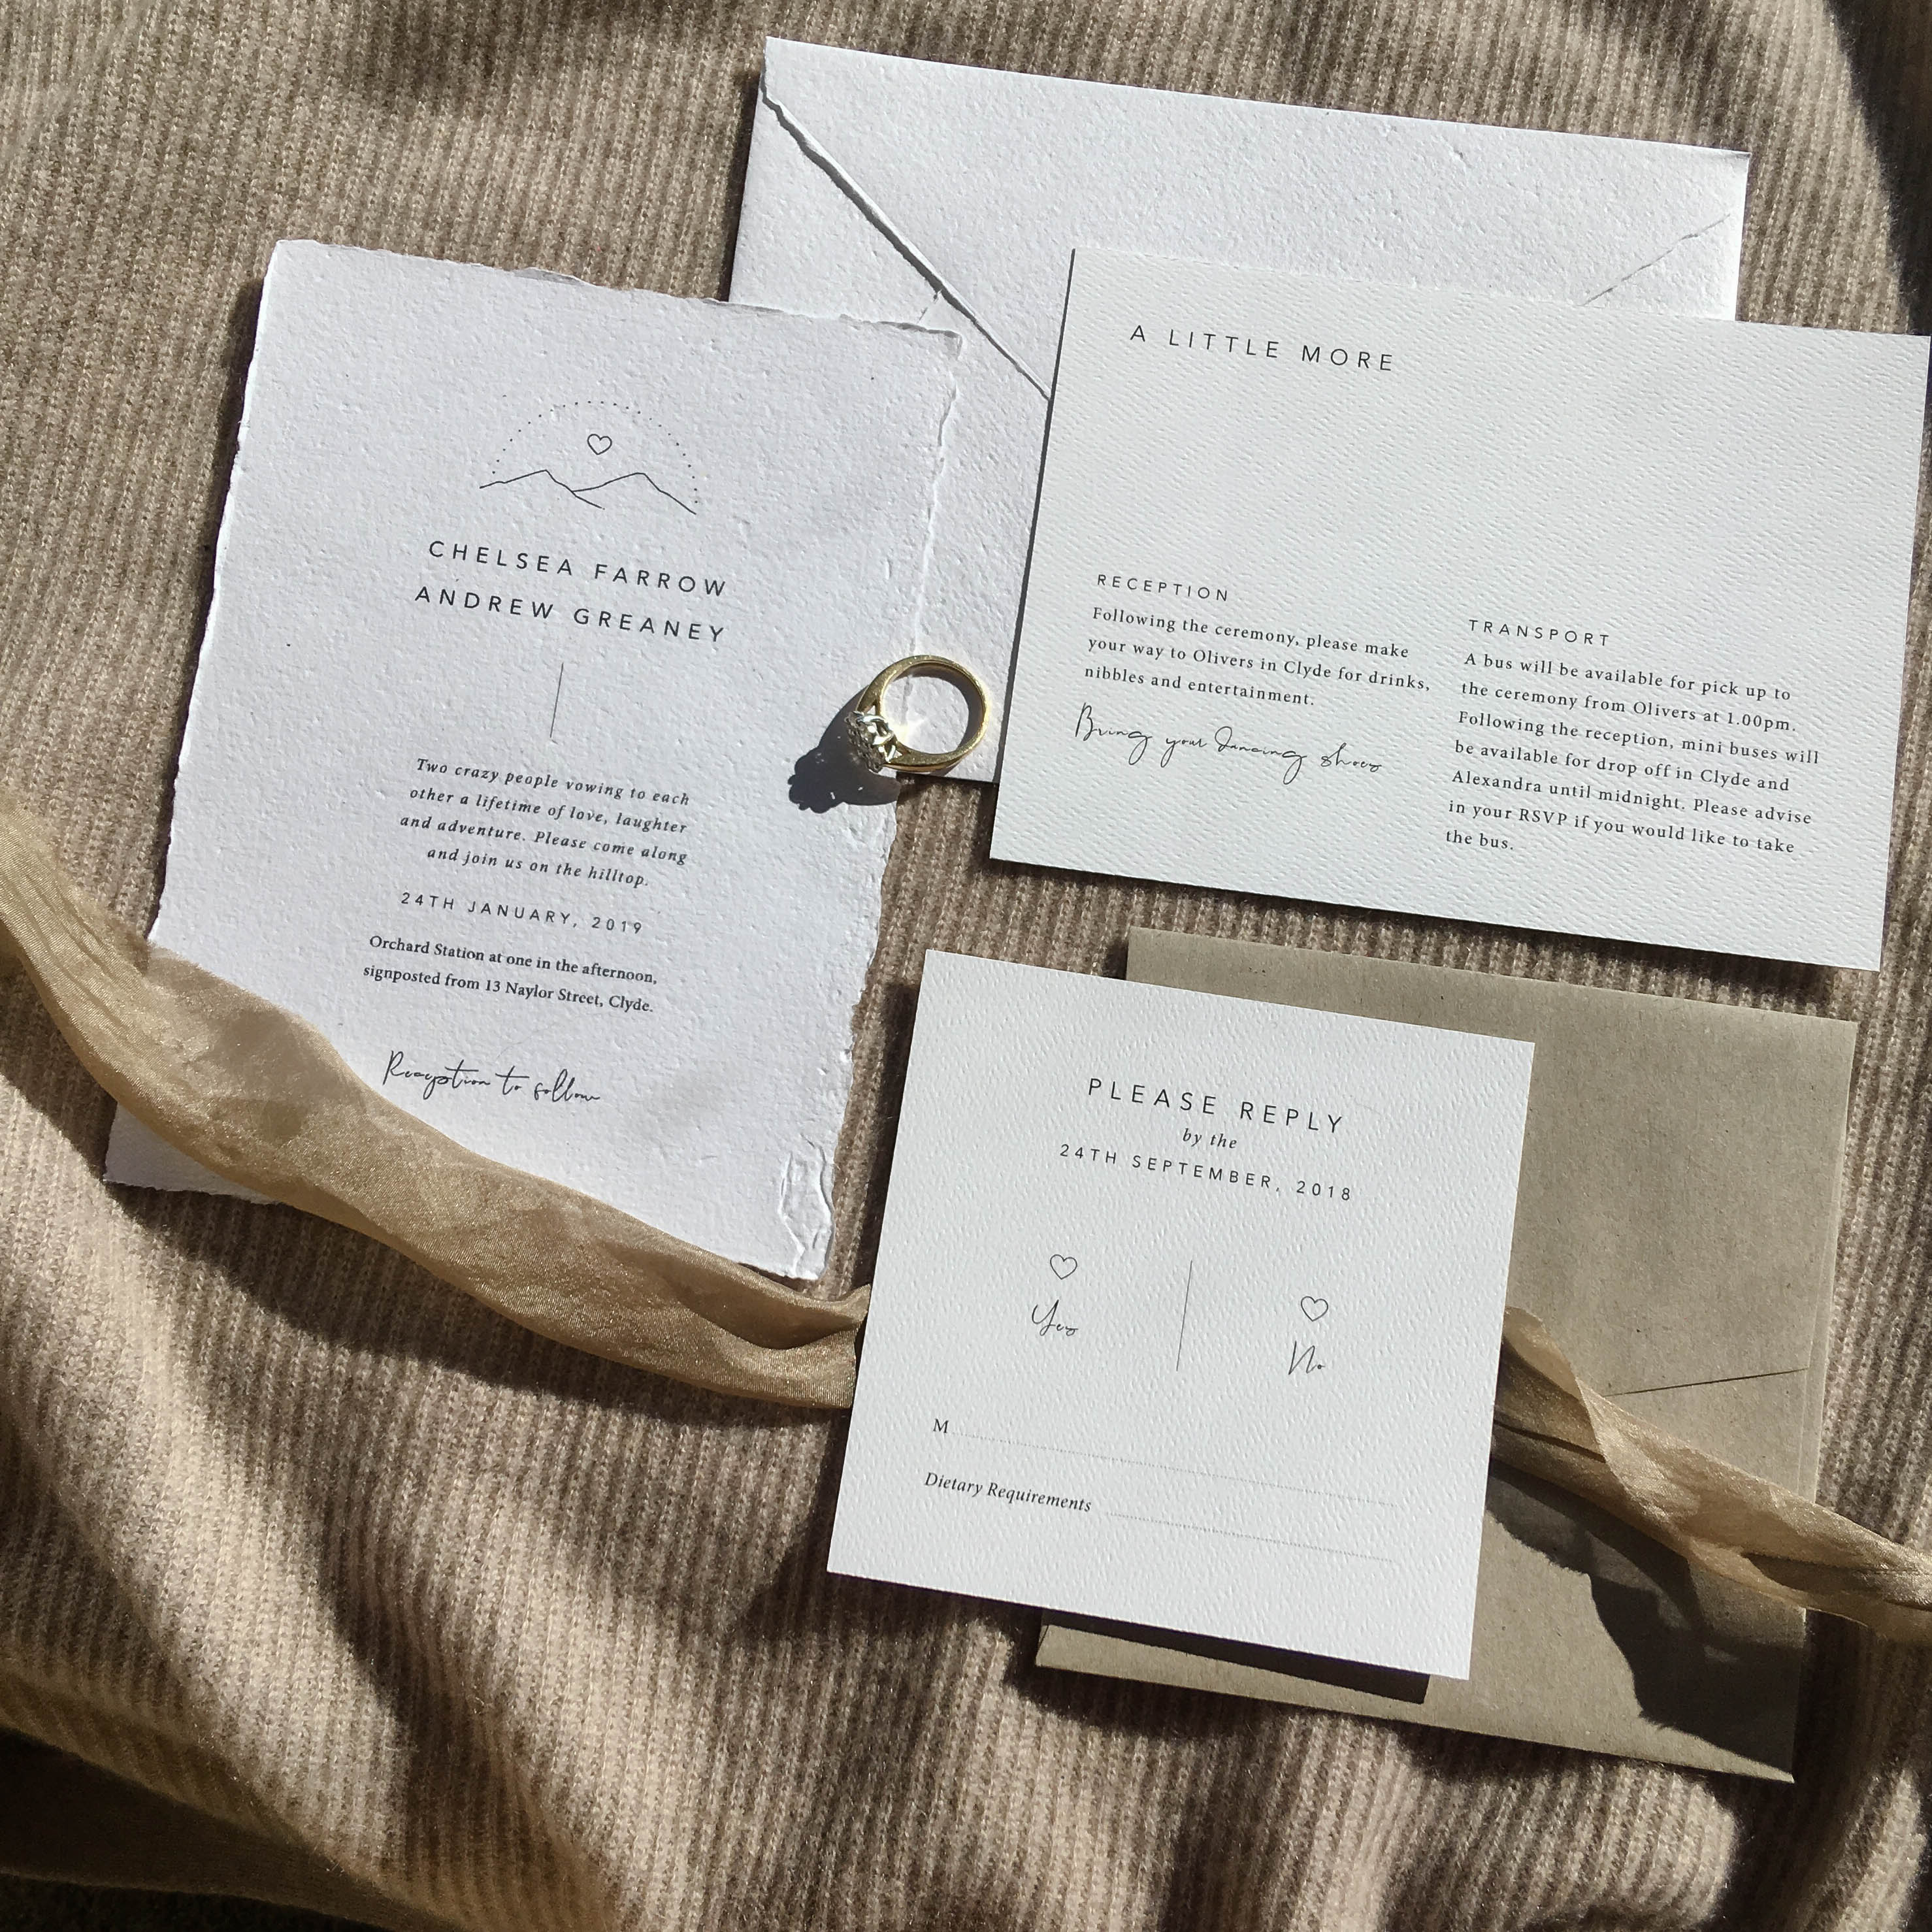 Smitten With Love Wedding Stationery Boutique, Wilderness Wedding Stationery Flatlay